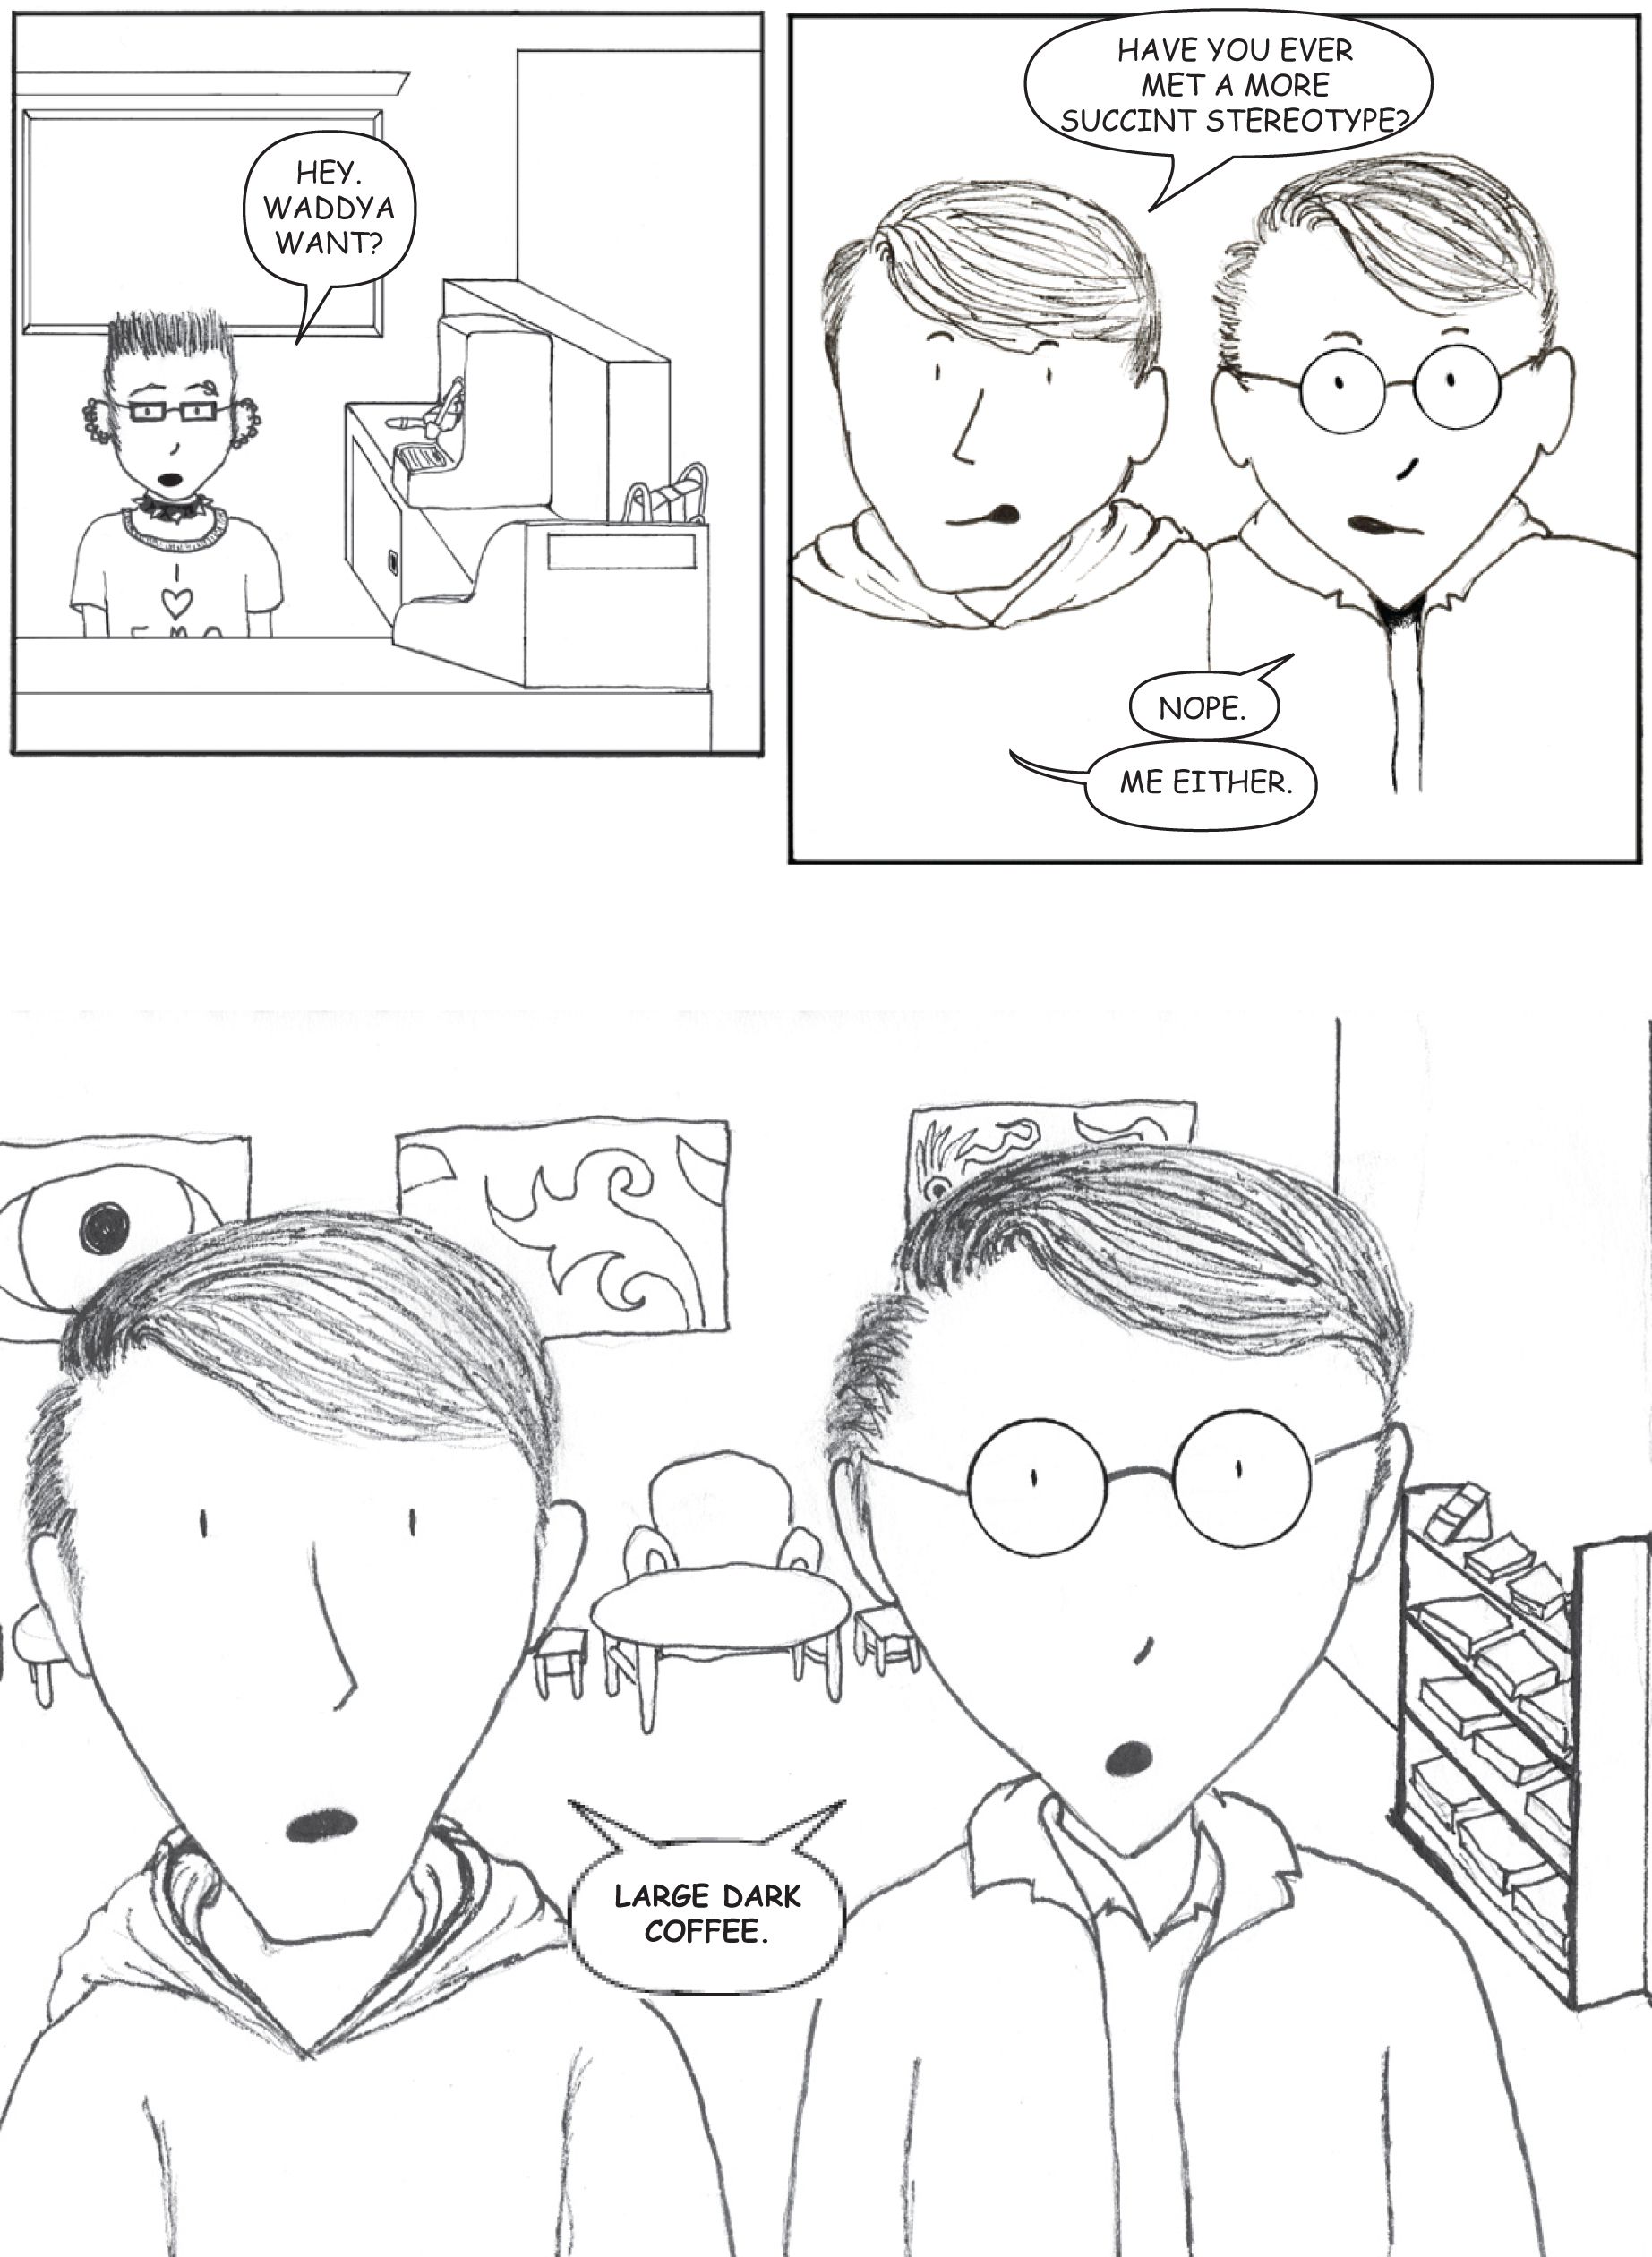 InL1page10